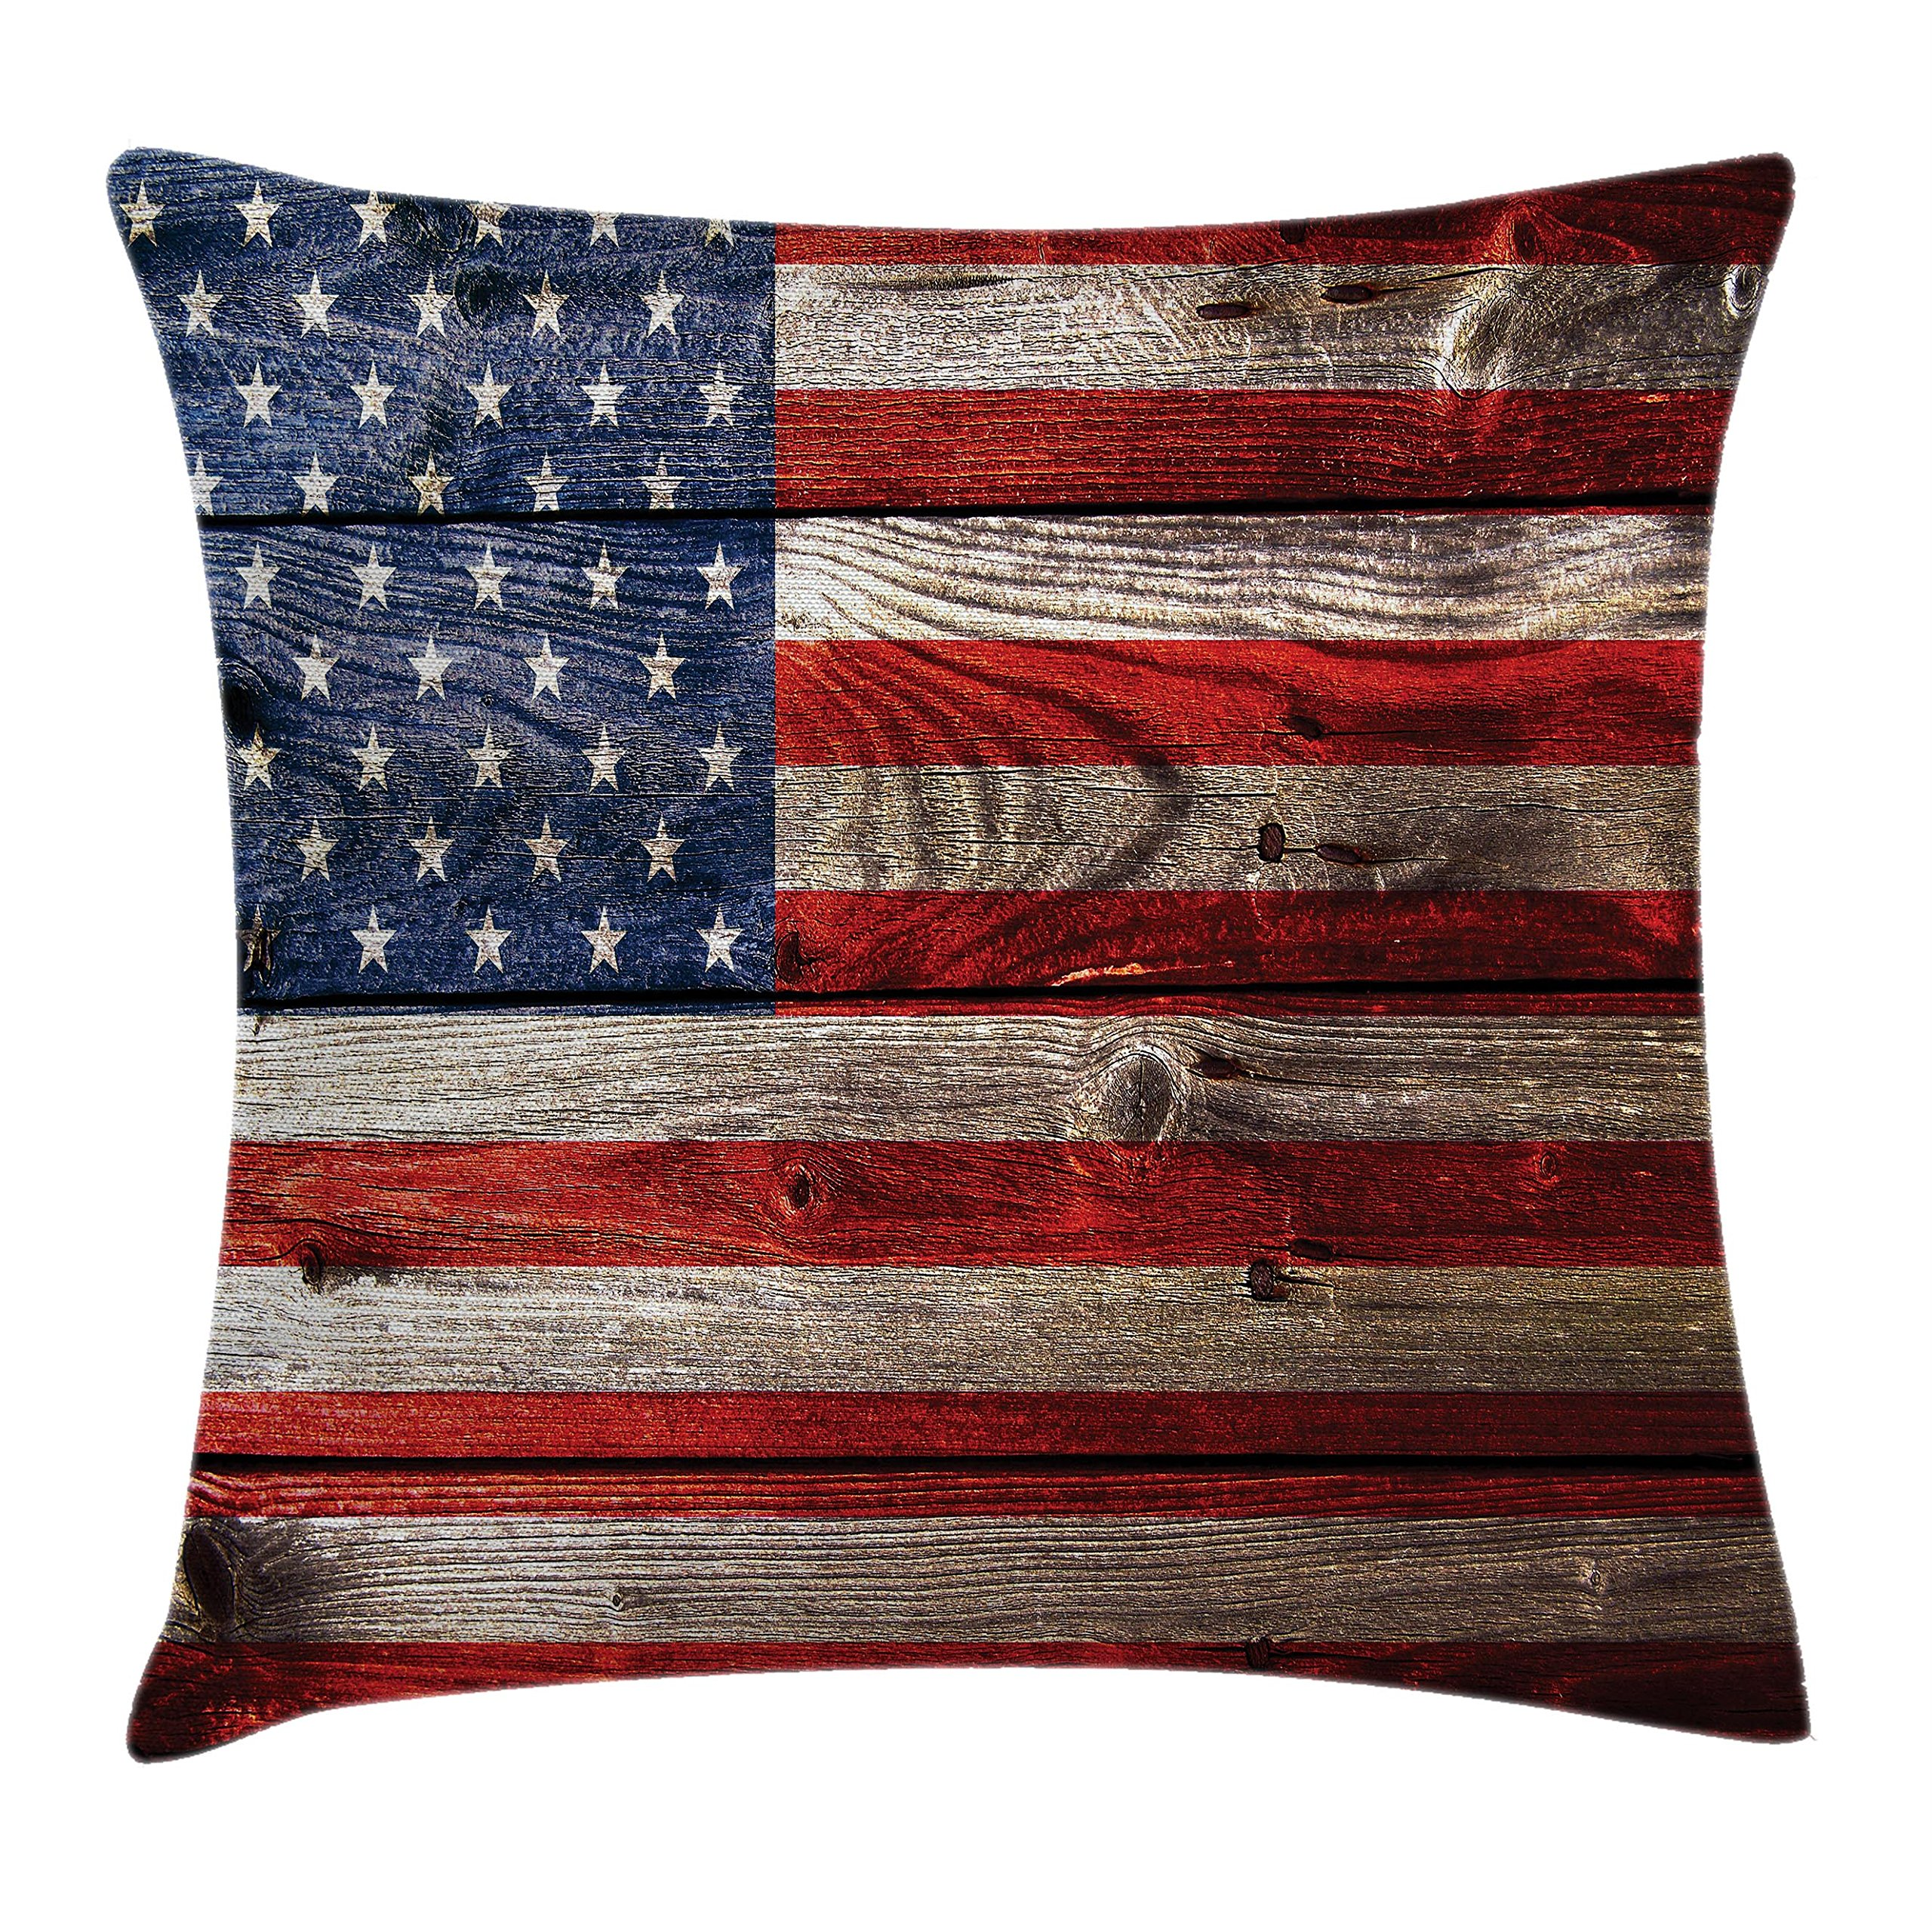 Ambesonne American Flag Throw Pillow Cushion Cover, Independence Day Weathered Retro Wood Wall Looking Country Emblem, Decorative Square Accent Pillow Case, 20 X 20 Inches, Red White and Blue